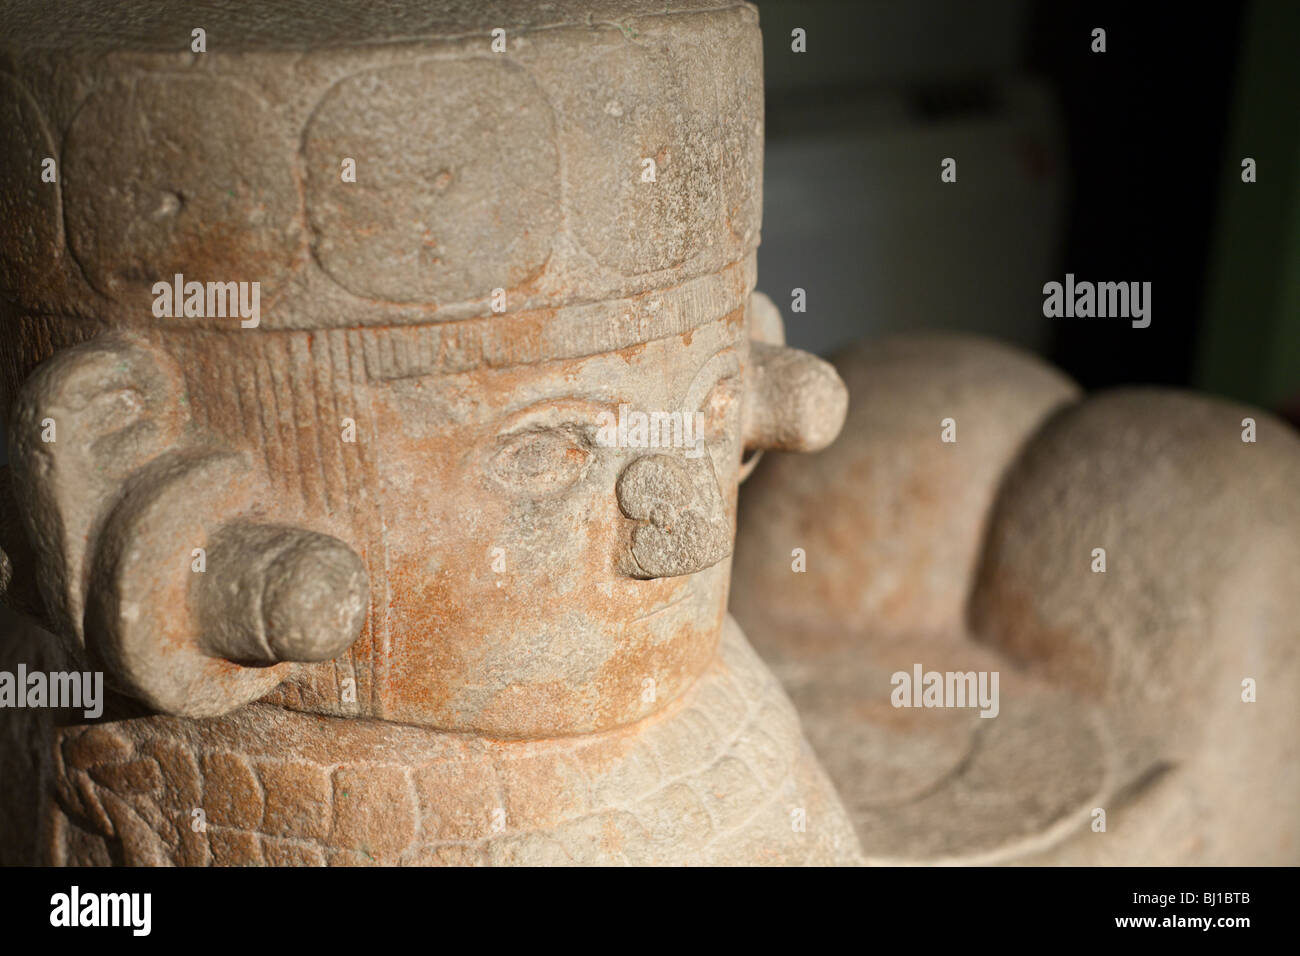 Detail of the face of a Chac Mool from Chichen Itza. Mayan-Toltec sculpture from 800-900AD. - Stock Image